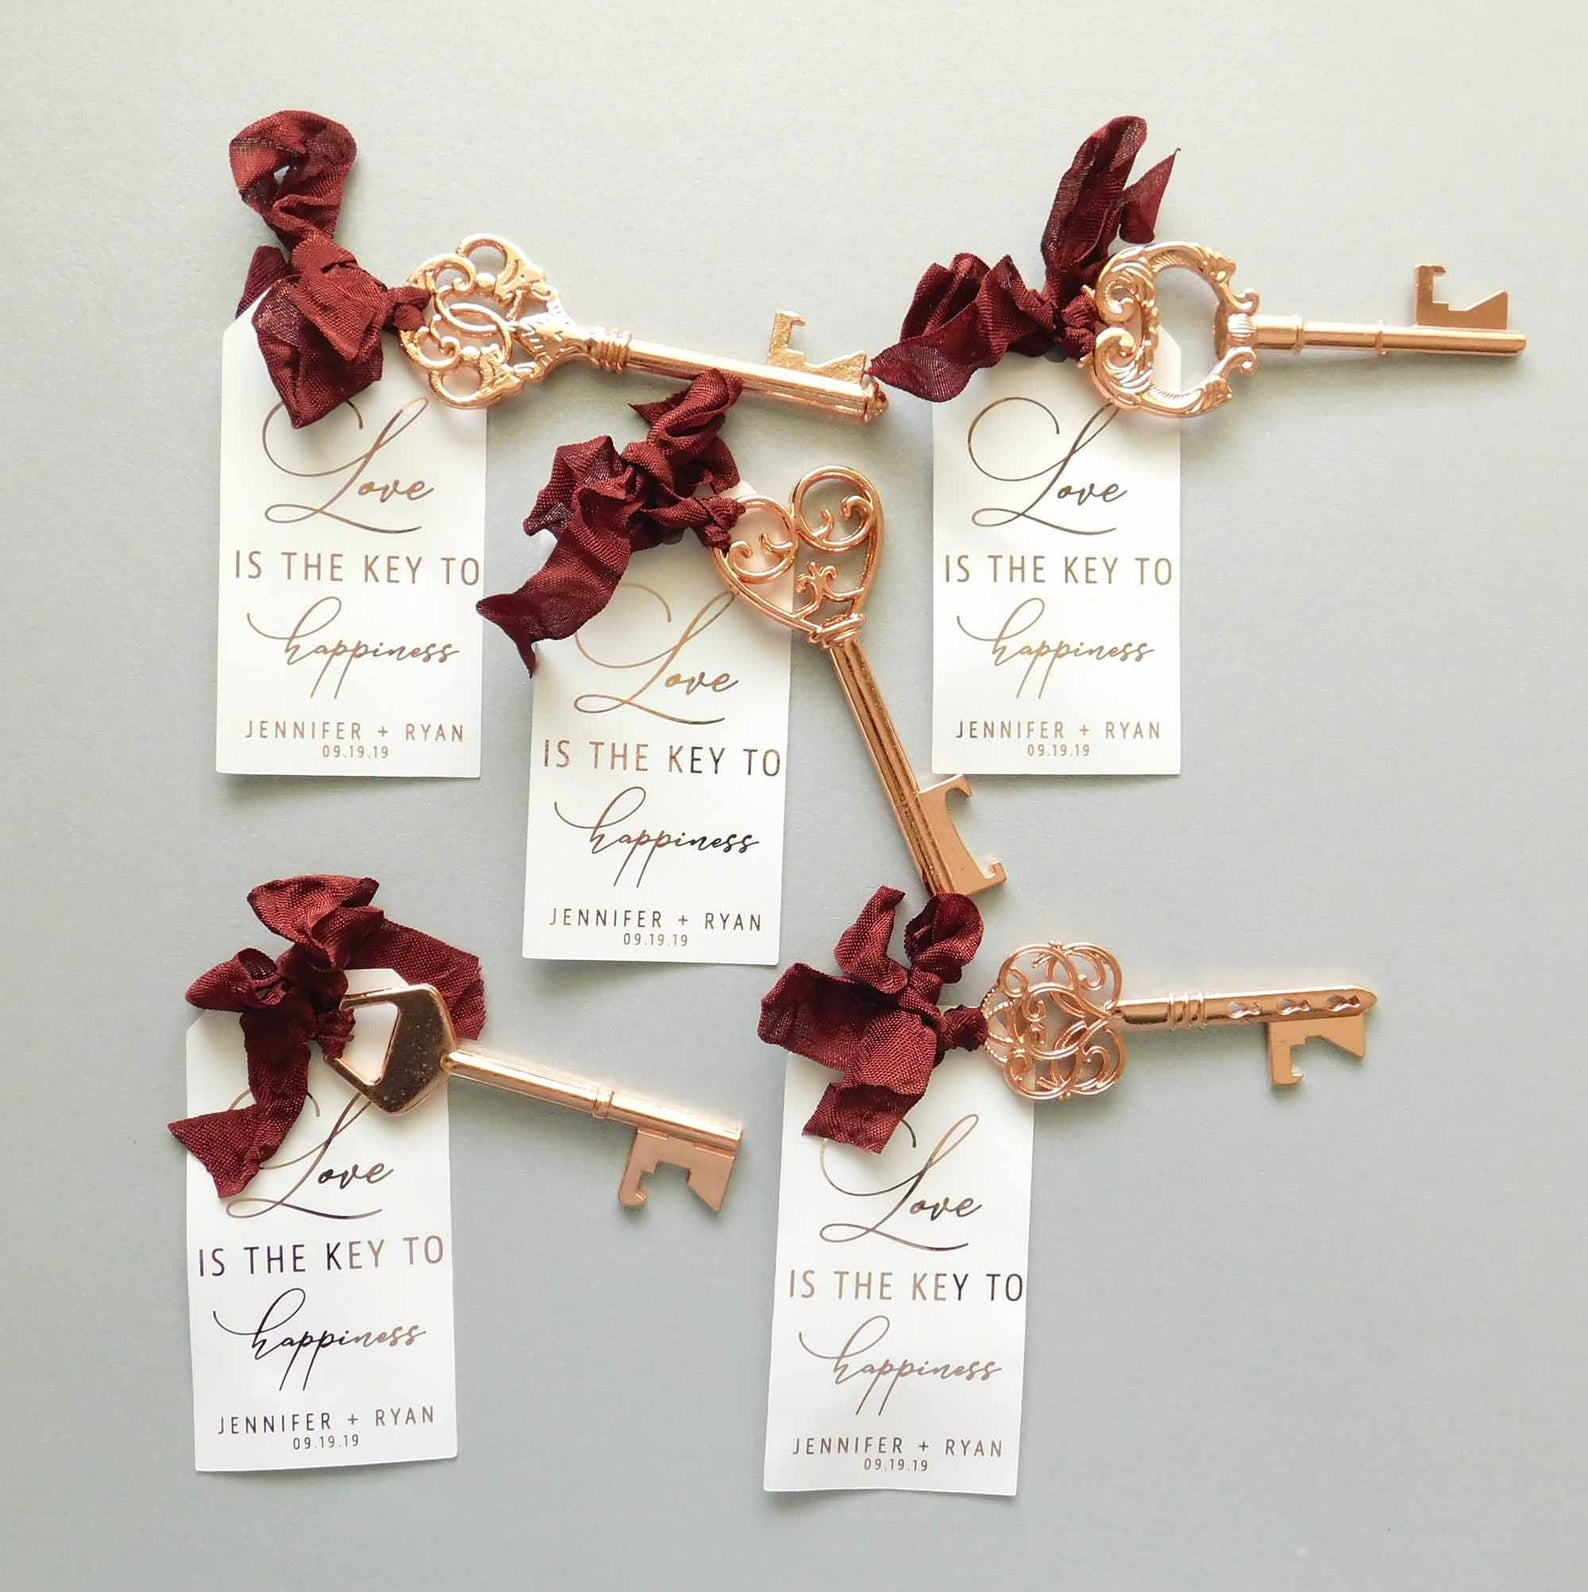 Key bottle opener wedding favors